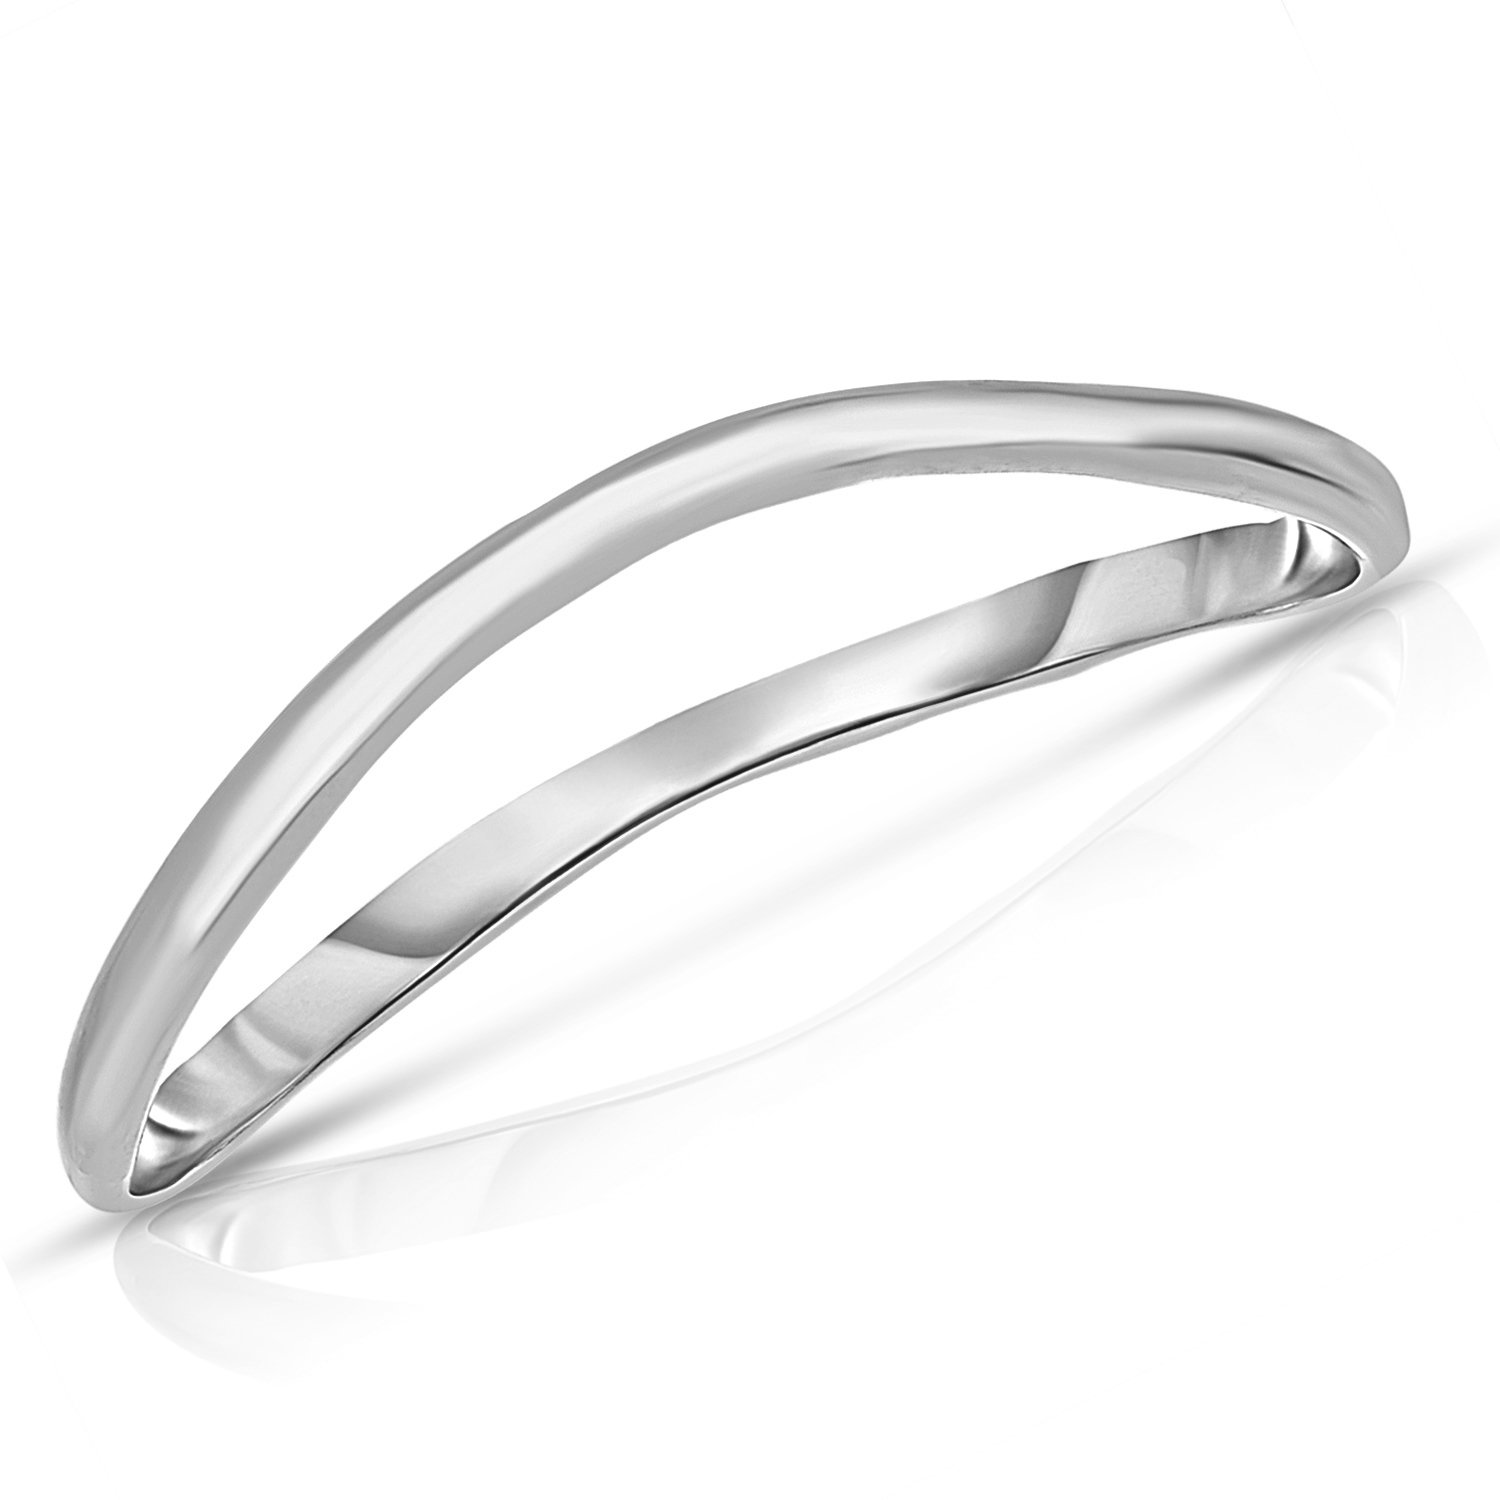 Amazon.com: 10k Fine Gold Thin Comfort Fit Curved Wave Thumb Ring (1.5mm):  Jewelry